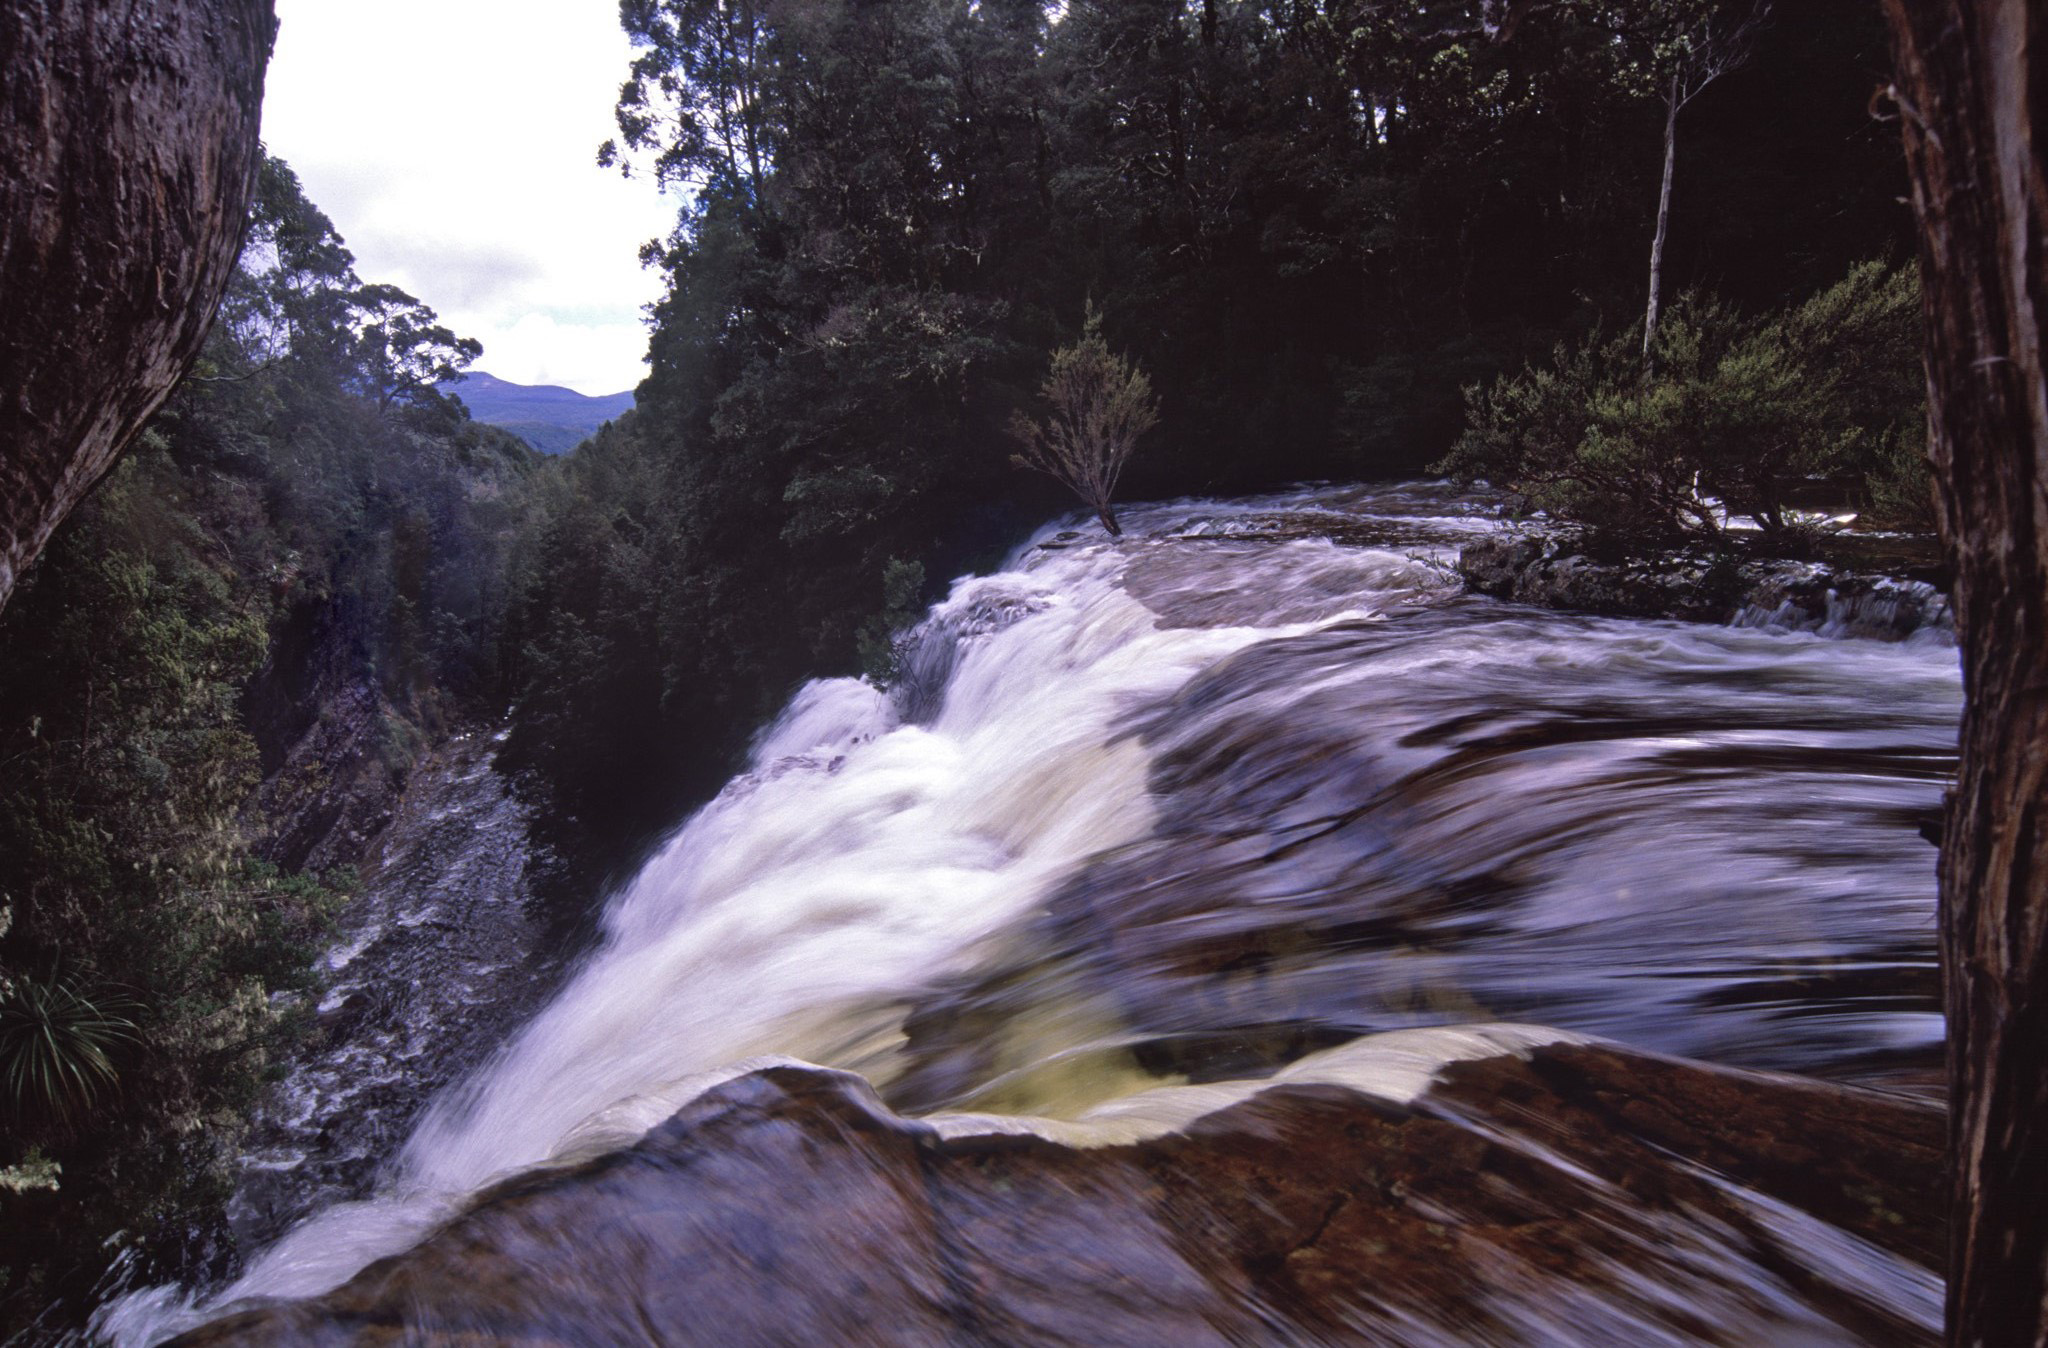 Fast flowing waterfall in Tasmania, Australia on the overland track with a close up view of the water cascading over a rock cliff to the river below